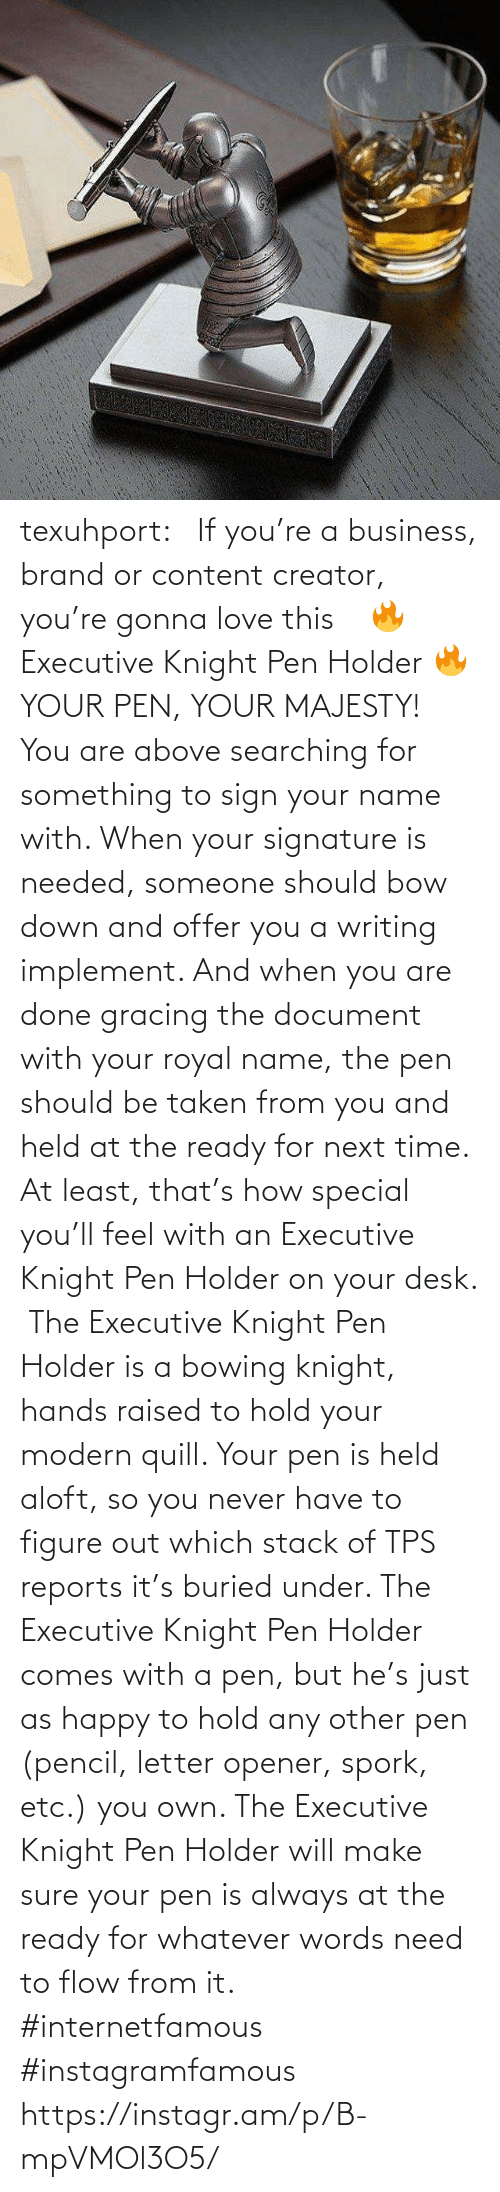 pen: texuhport:⎆ If you're a business, brand or content creator, you're gonna love this ⎆⁣ 🔥 Executive Knight Pen Holder 🔥⁣ YOUR PEN, YOUR MAJESTY!⁣ ⁣ You are above searching for something to sign your name with. When your signature is needed, someone should bow down and offer you a writing implement. And when you are done gracing the document with your royal name, the pen should be taken from you and held at the ready for next time. At least, that's how special you'll feel with an Executive Knight Pen Holder on your desk.⁣ ⁣ The Executive Knight Pen Holder is a bowing knight, hands raised to hold your modern quill. Your pen is held aloft, so you never have to figure out which stack of TPS reports it's buried under. The Executive Knight Pen Holder comes with a pen, but he's just as happy to hold any other pen (pencil, letter opener, spork, etc.) you own. The Executive Knight Pen Holder will make sure your pen is always at the ready for whatever words need to flow from it.⁣ #internetfamous  #instagramfamous https://instagr.am/p/B-mpVMOl3O5/